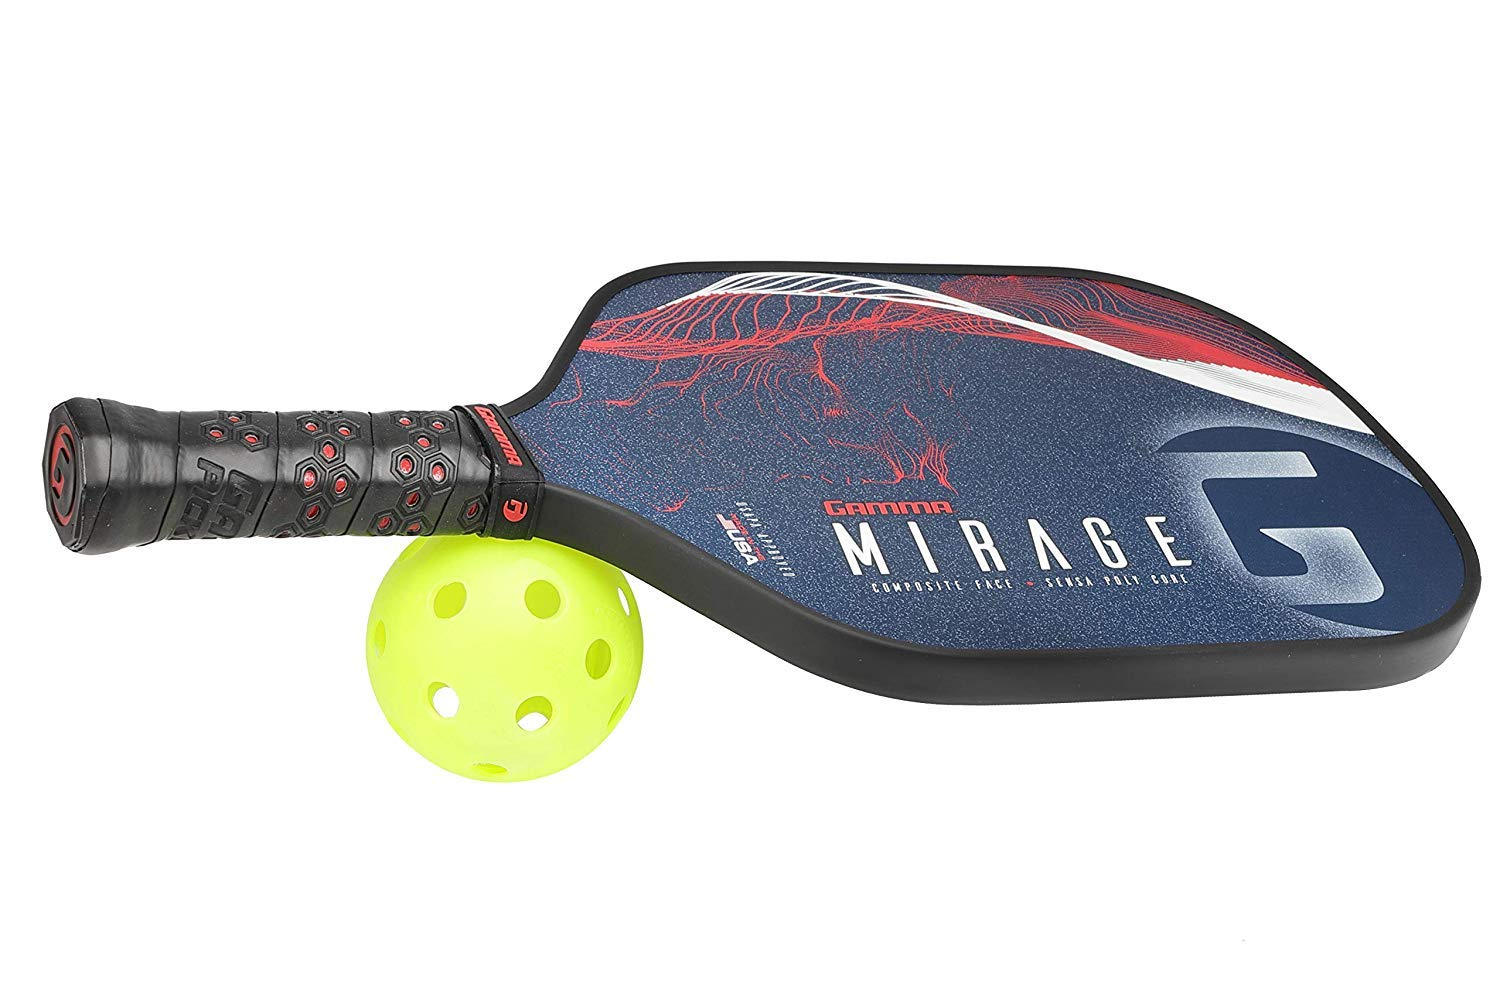 GAMMA Mirage Composite Pickleball Paddle: Pickle Ball Paddles for Indoor & Outdoor Play - USAPA Approved Racquet for Adults & Kids - Red/White/Blue by Gamma (Image #6)